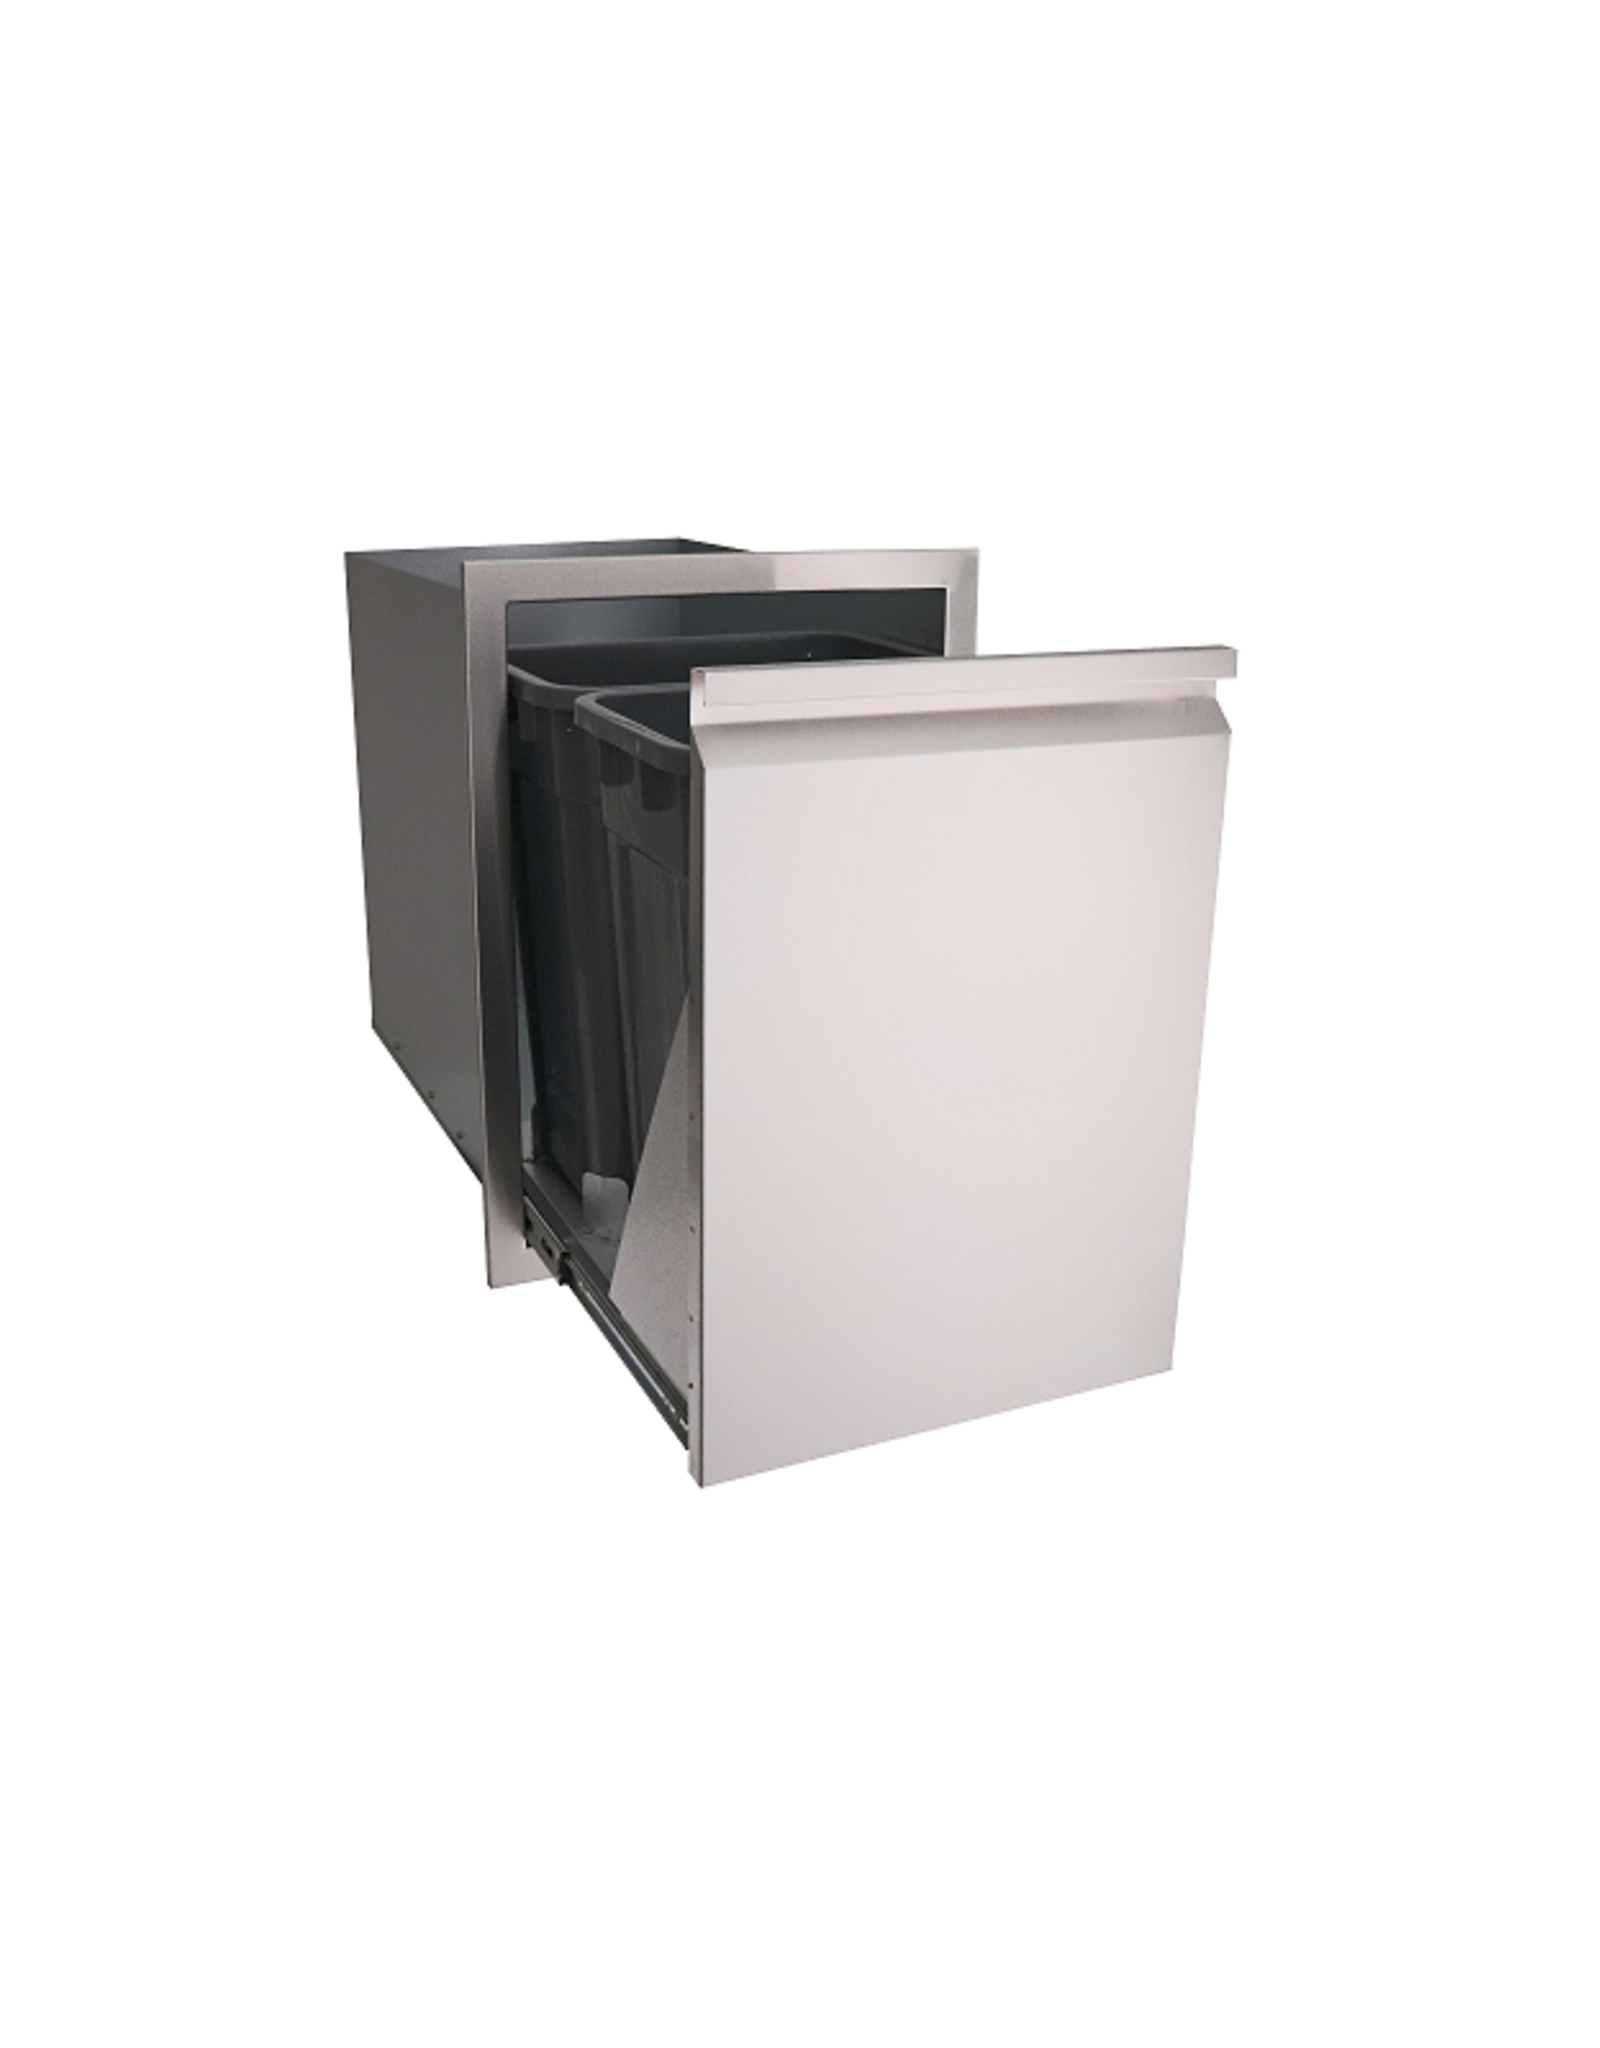 Renaissance Cooking Systems Renaissance Cooking Systems The Valiant Series Double Trash Drawer - VTD2